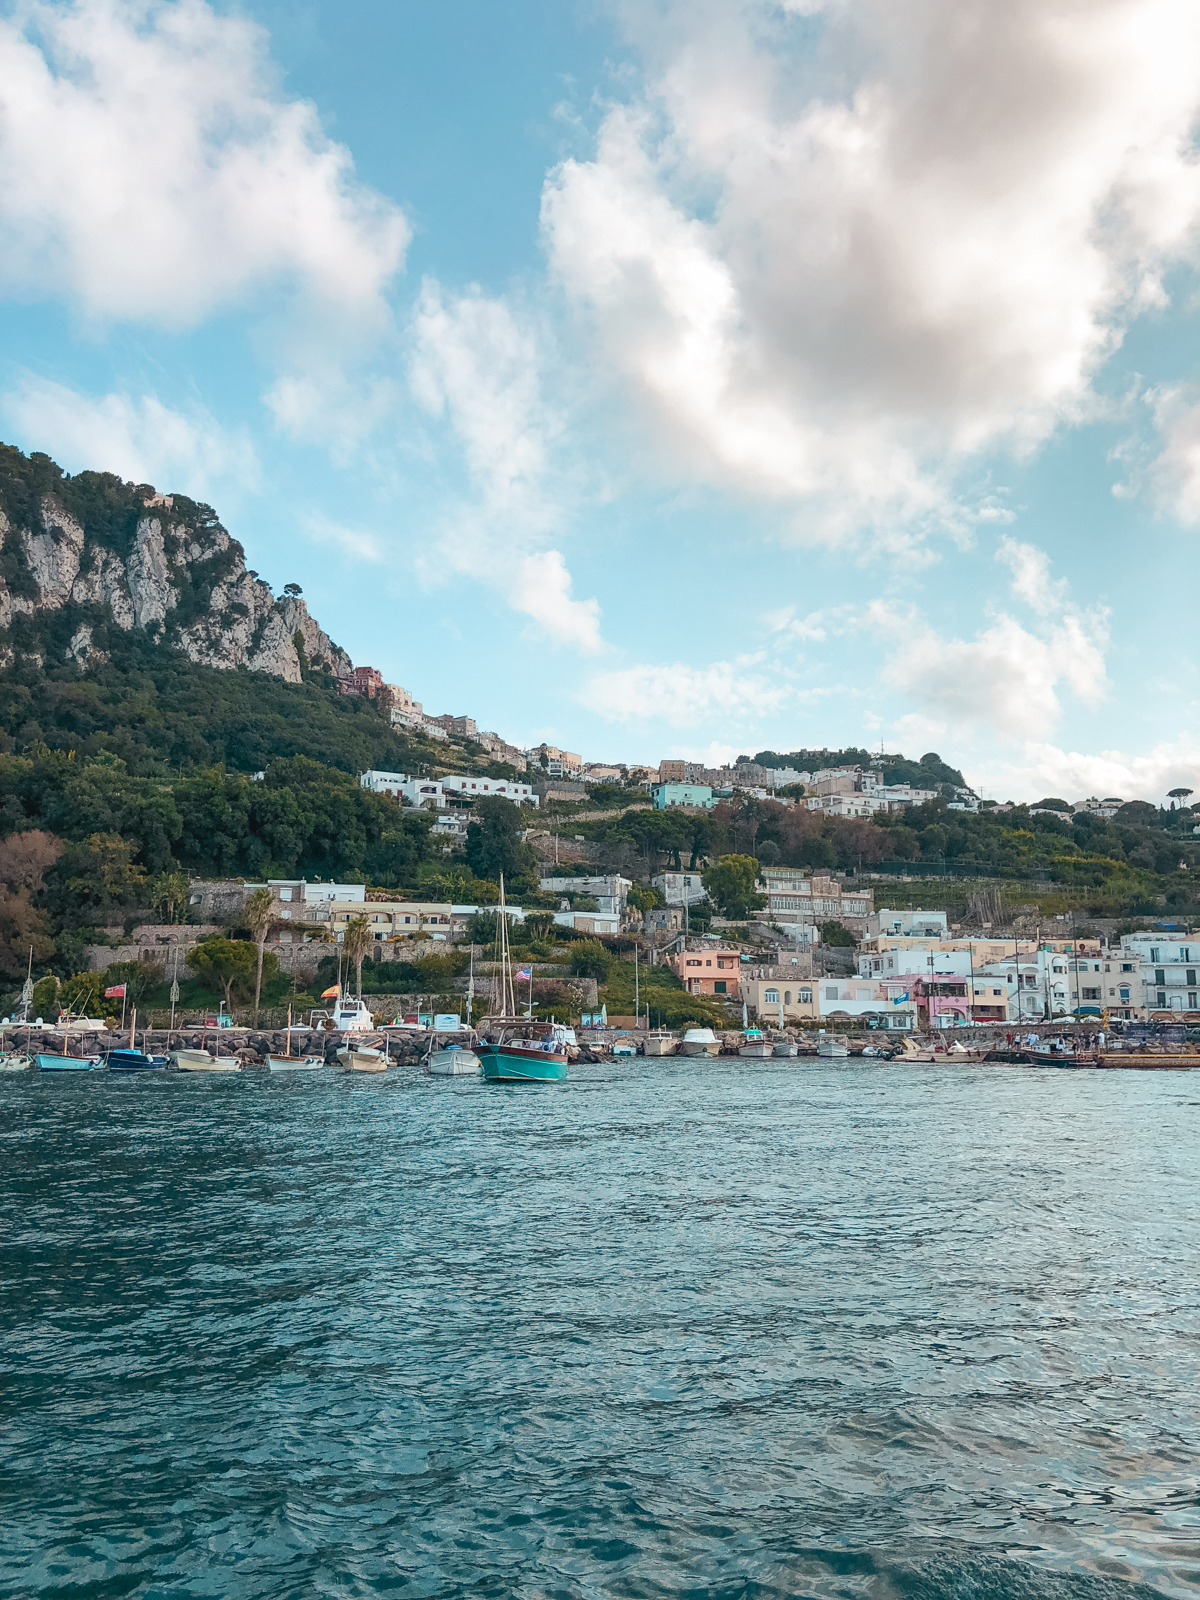 capri from a distance